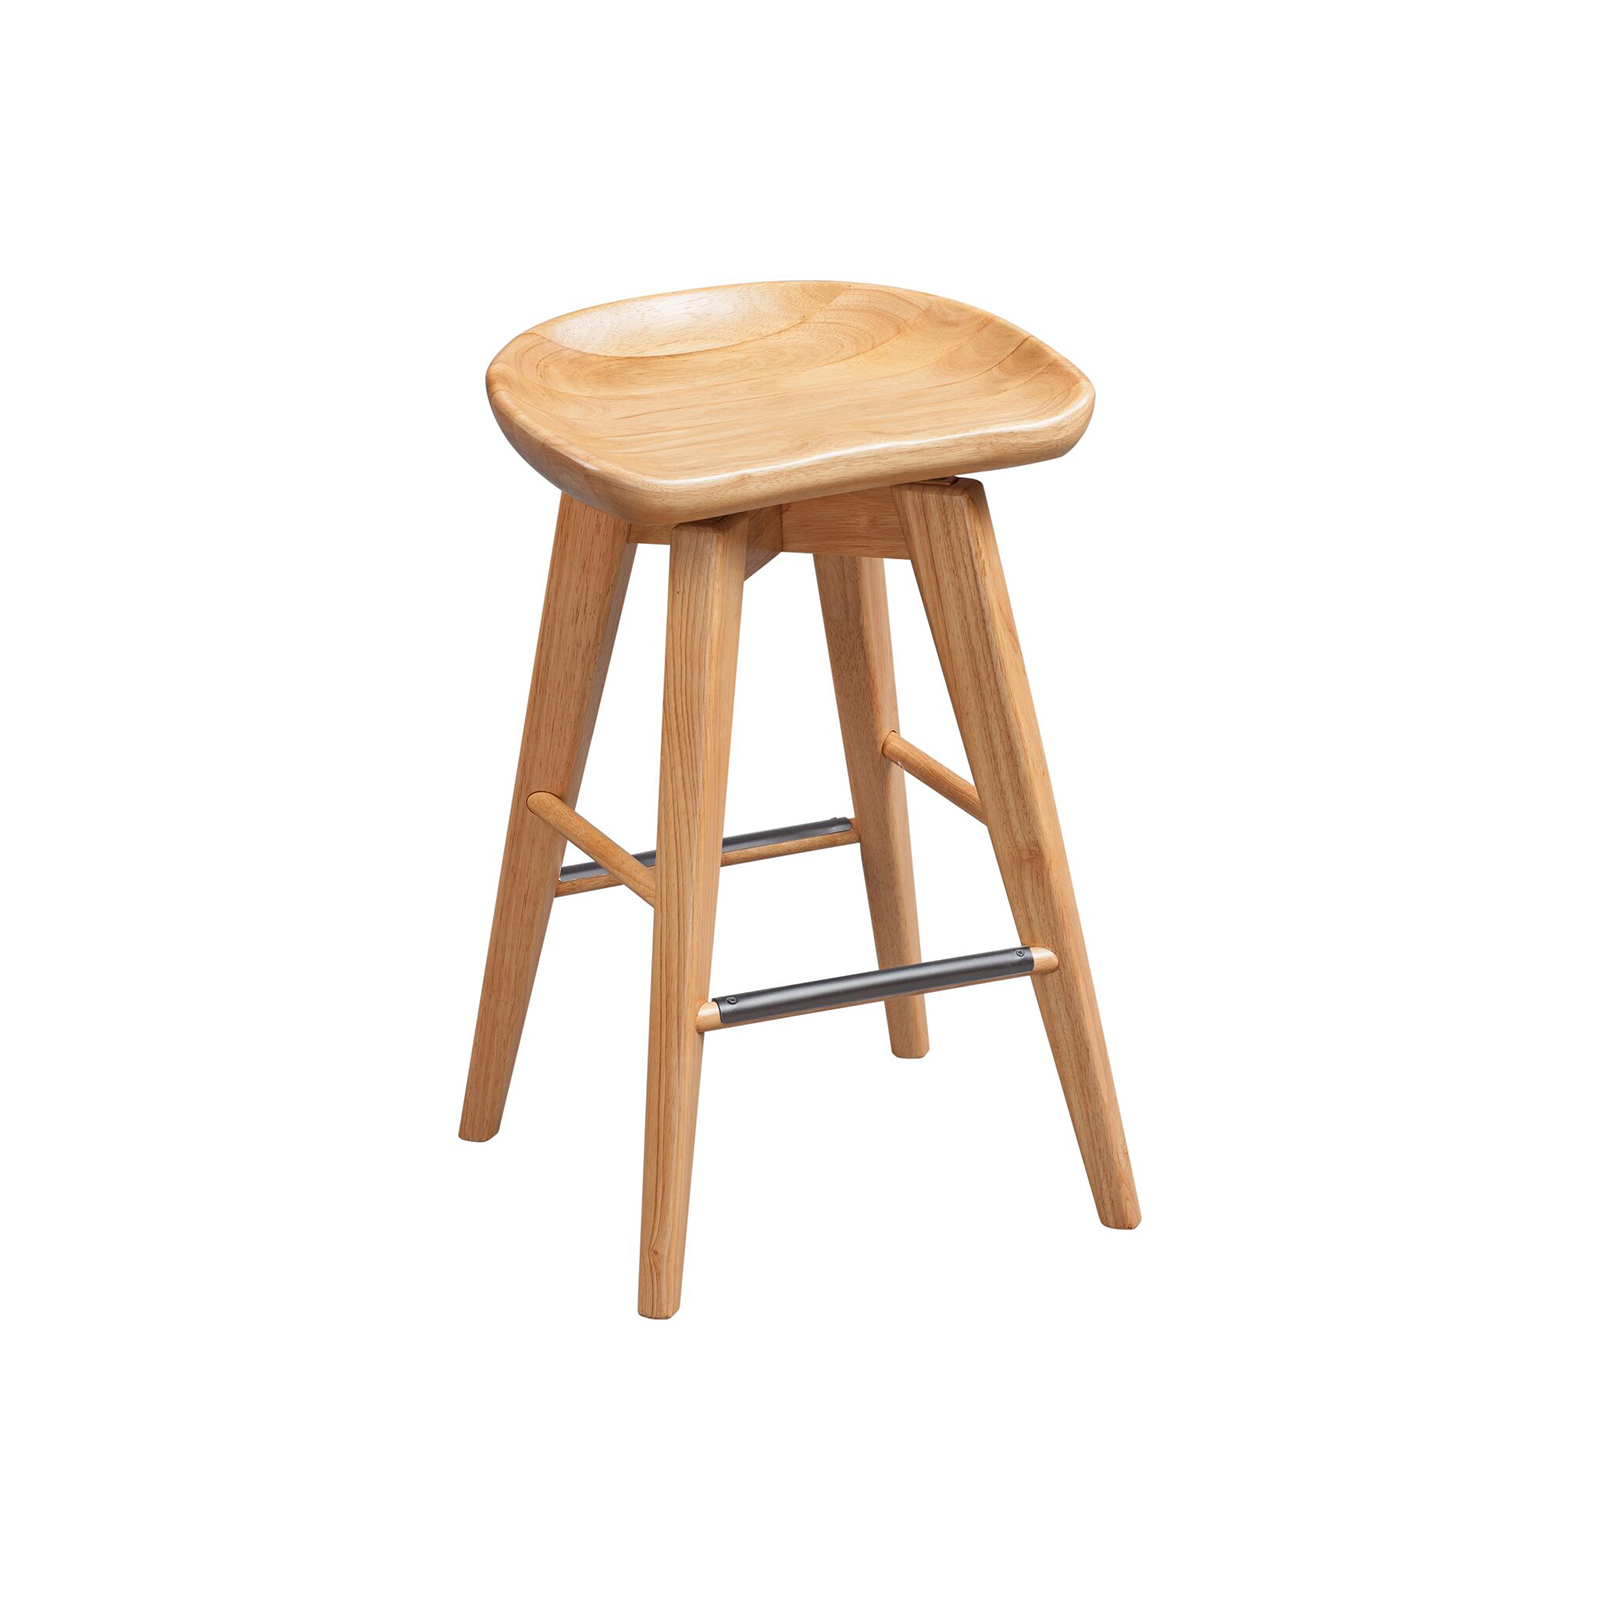 Boraam Bali 24 in Backless Swivel Counter Stool Bar  : masterBOR212 from www.hayneedle.com size 1600 x 1600 jpeg 118kB